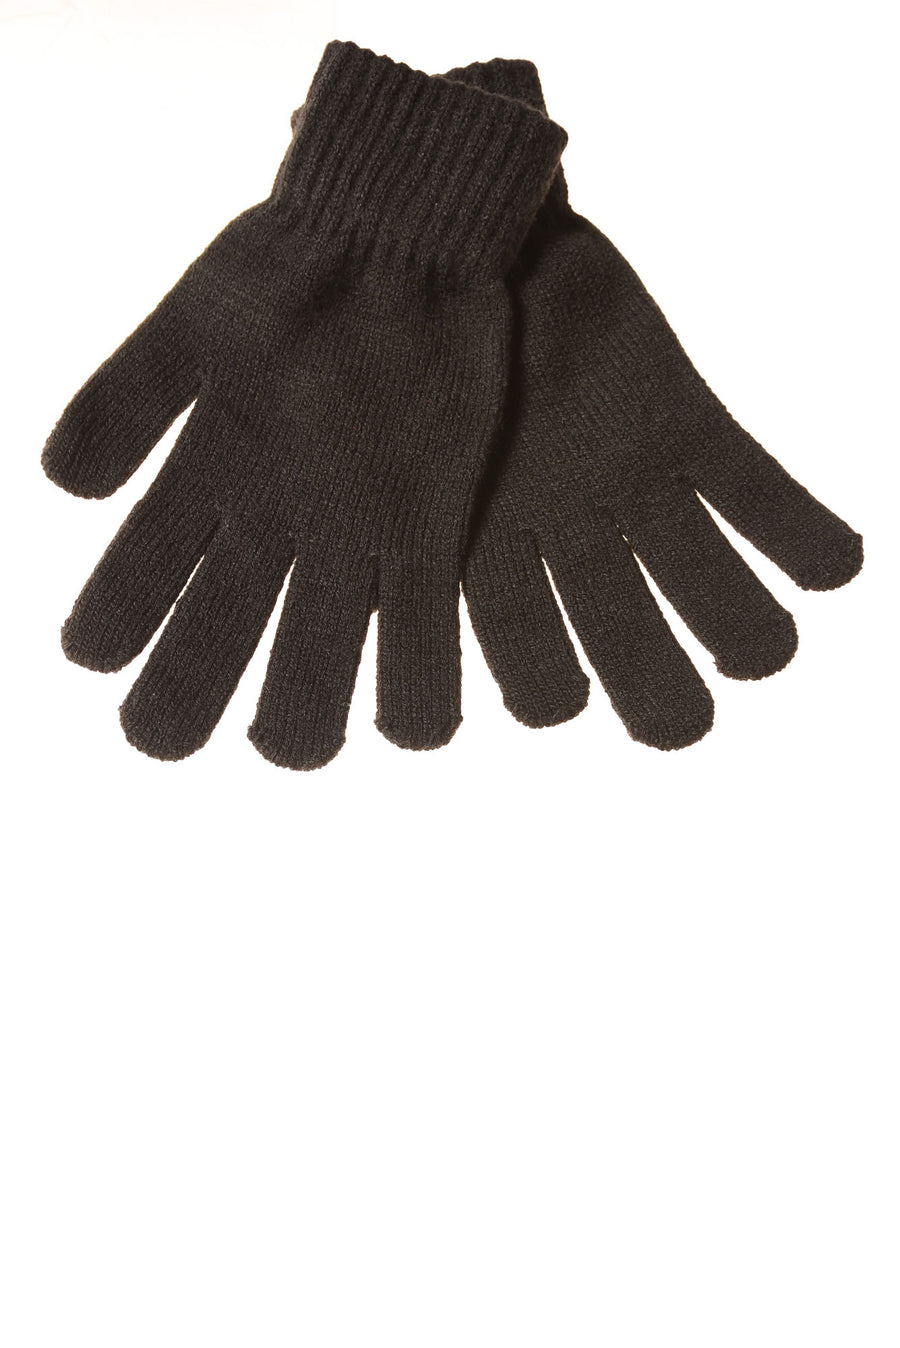 NEW No Brand Women's Gloves One Size Black